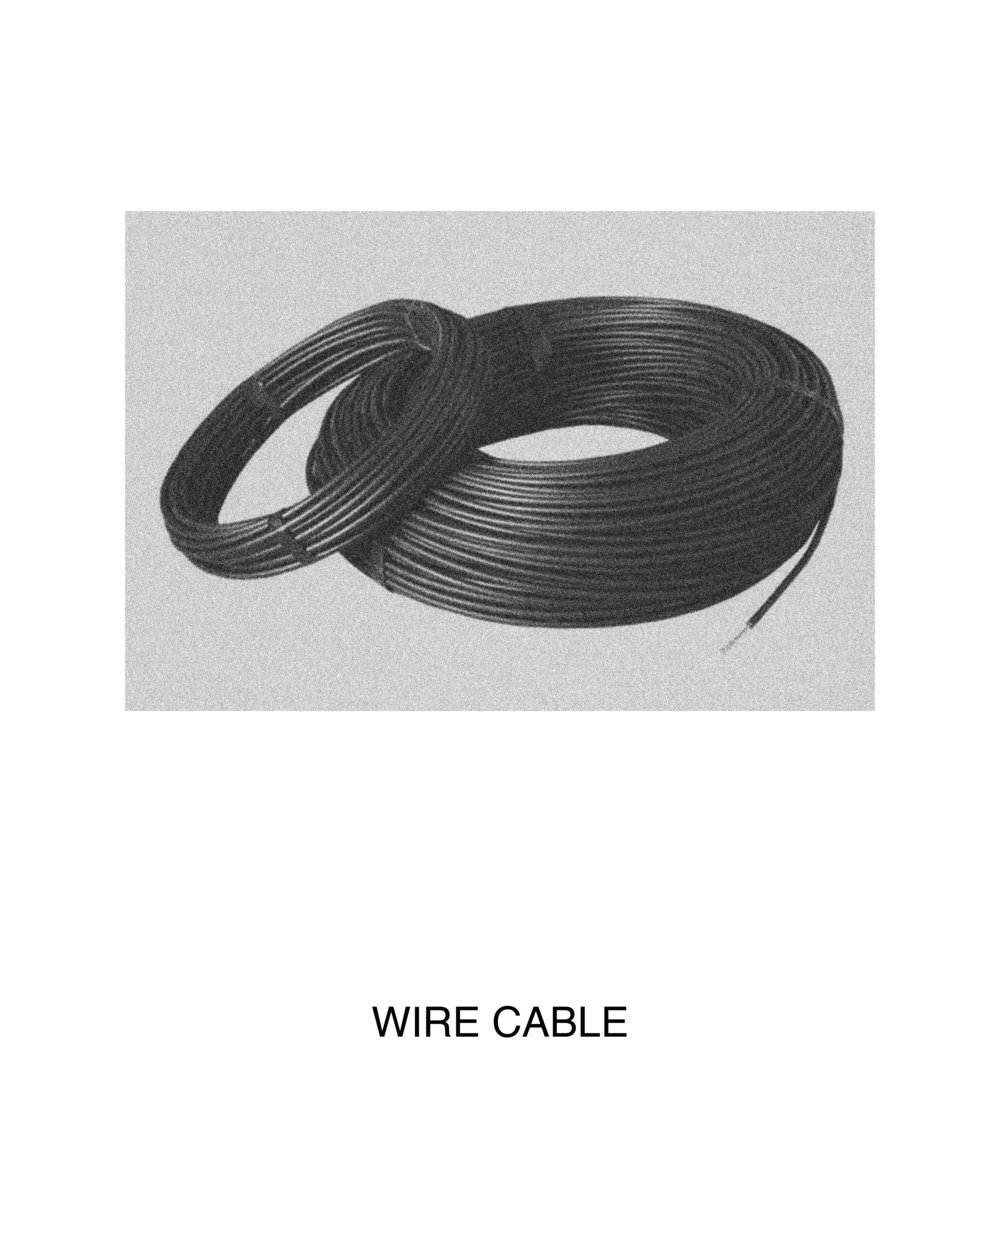 WIRE CABLE.jpg